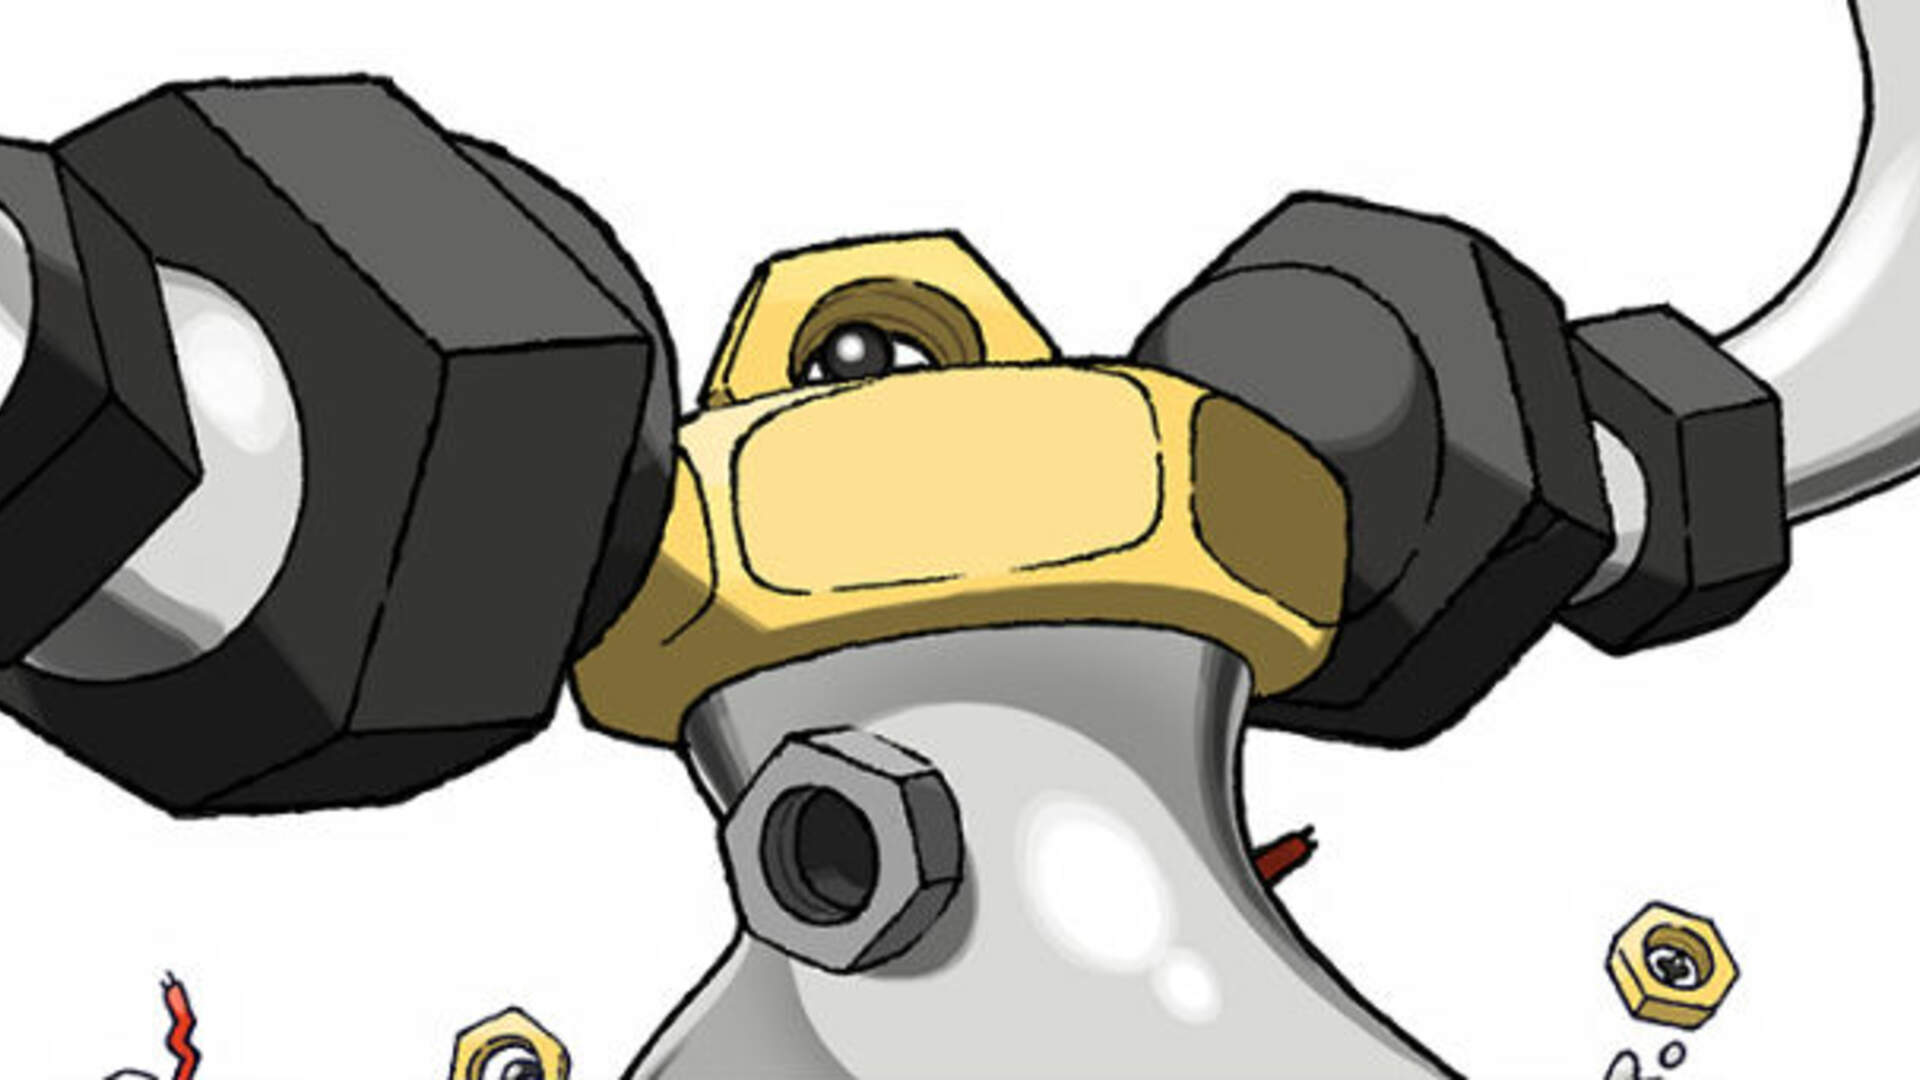 Pokemon Go's Meltan Has An Evolution Called Melmetal